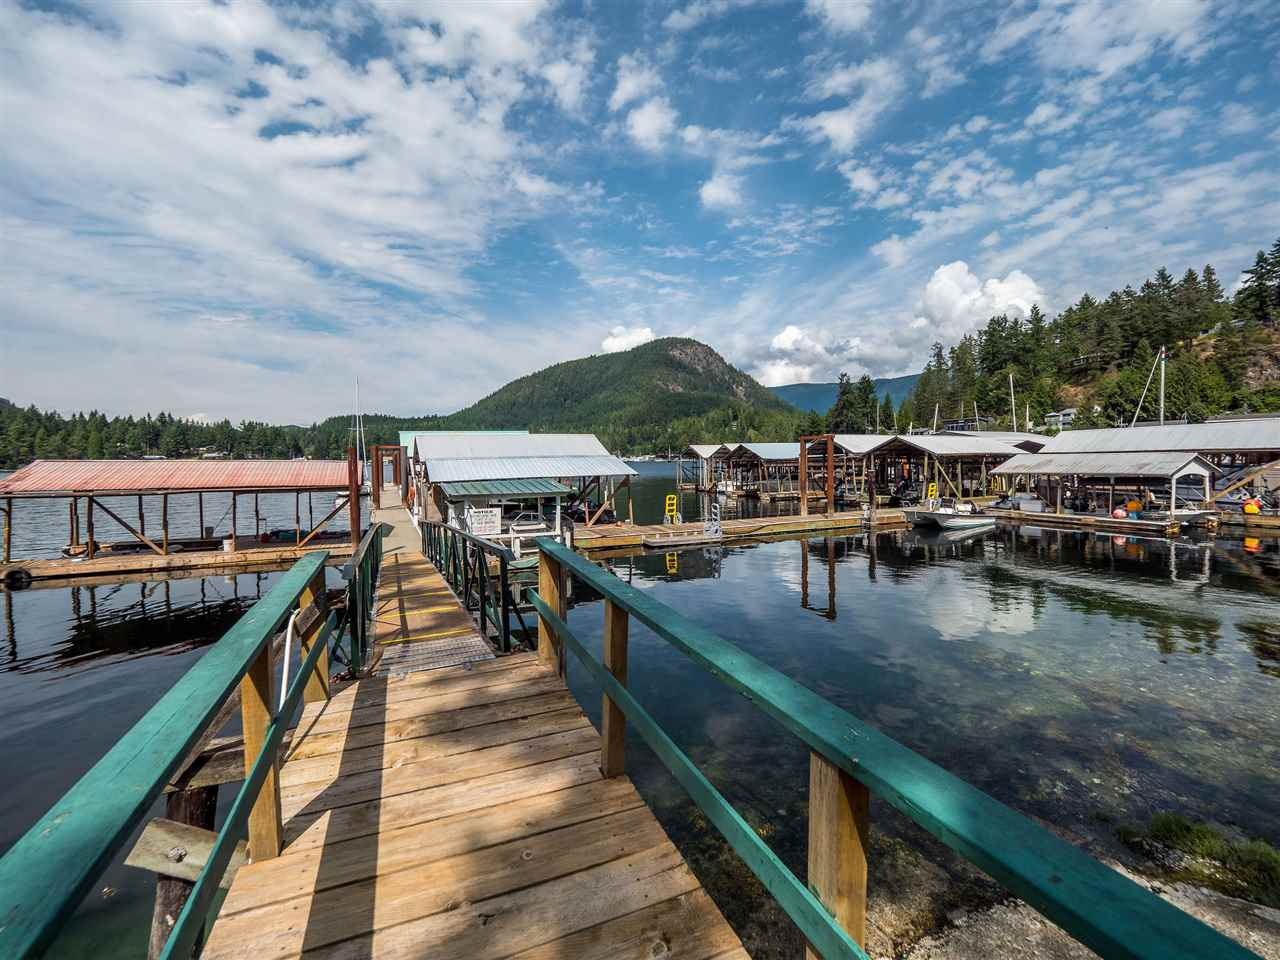 11 4995 GONZALES ROAD - Pender Harbour Egmont House/Single Family for sale, 2 Bedrooms (R2447947) - #2